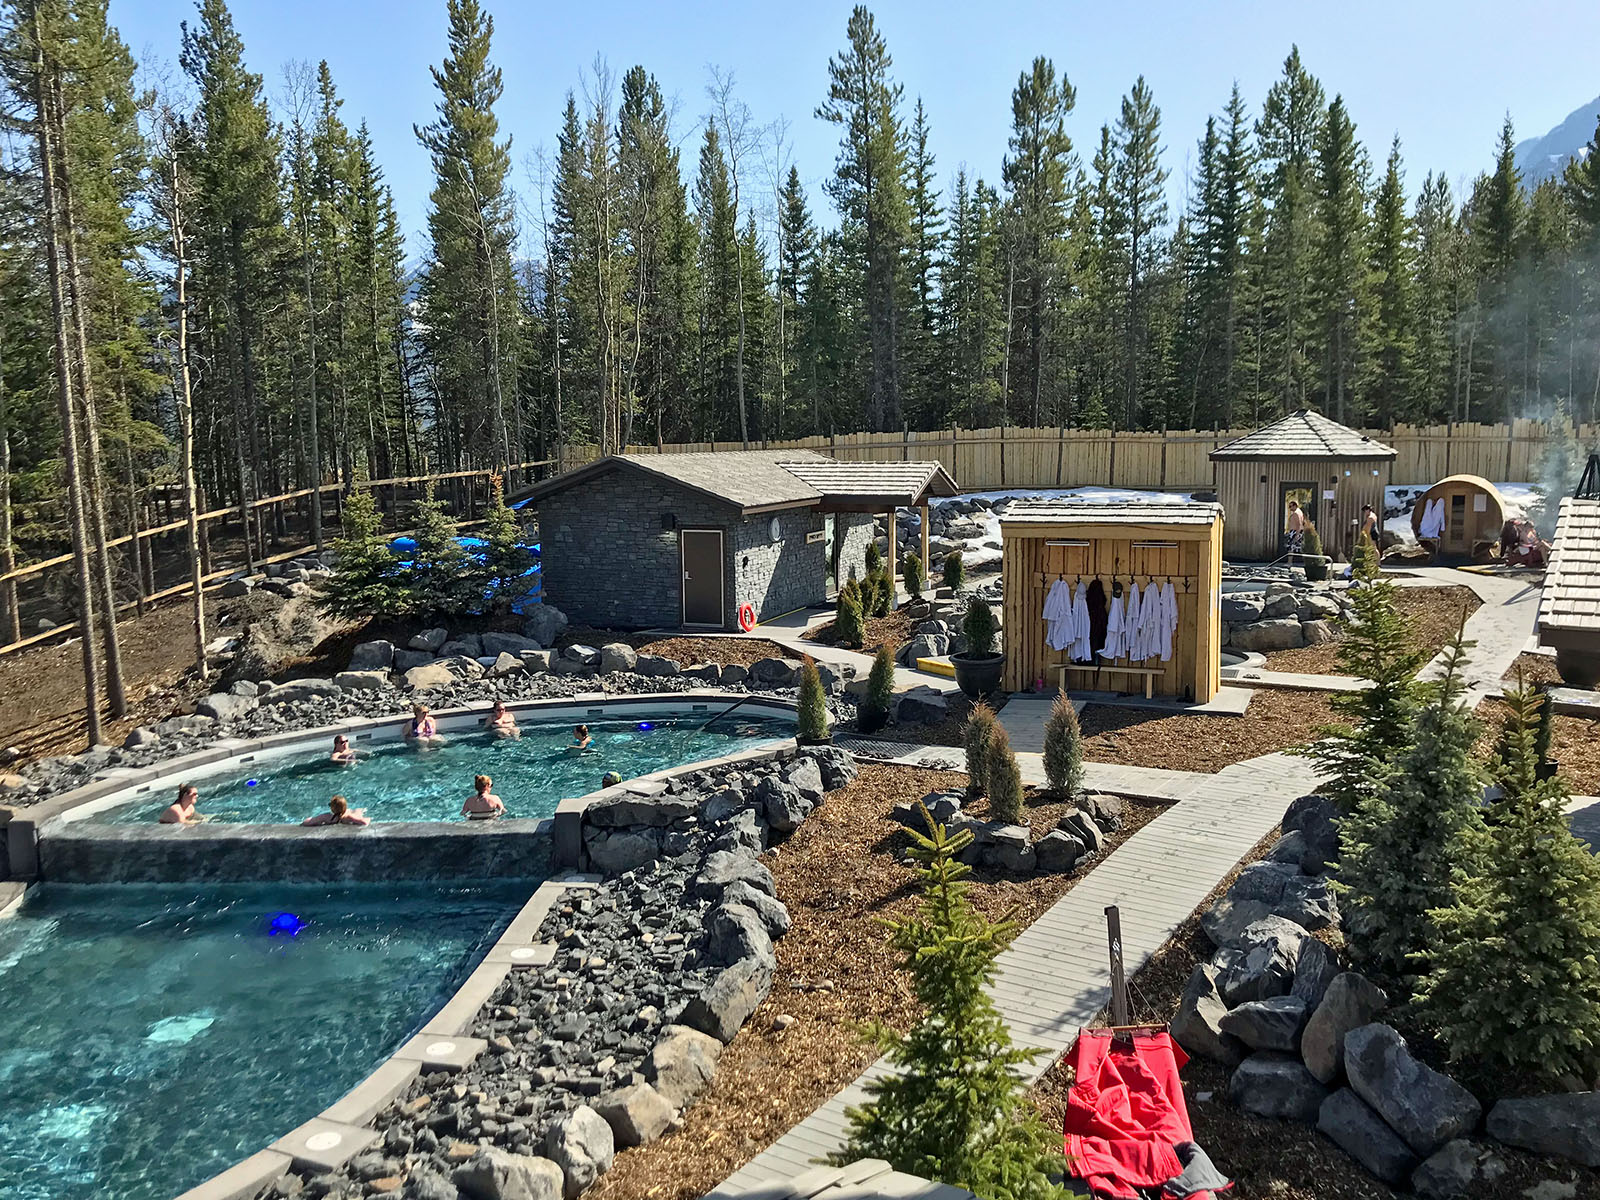 Alberta Finally Has A Nordic Spa And Its Location Is Perfect Canadian Geographic